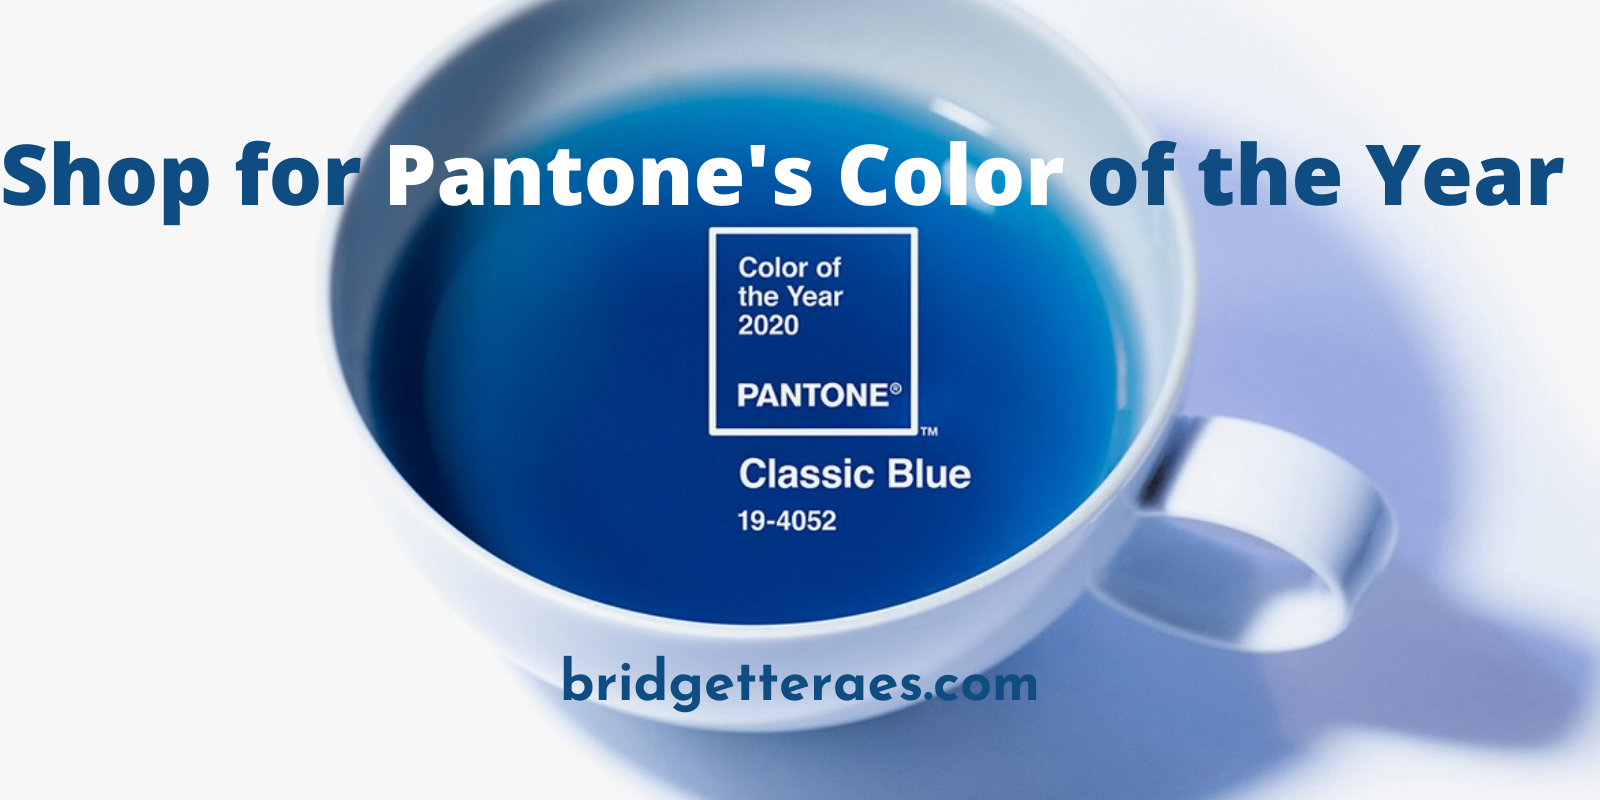 Shop for Classic Blue, Pantone's Color of the Year